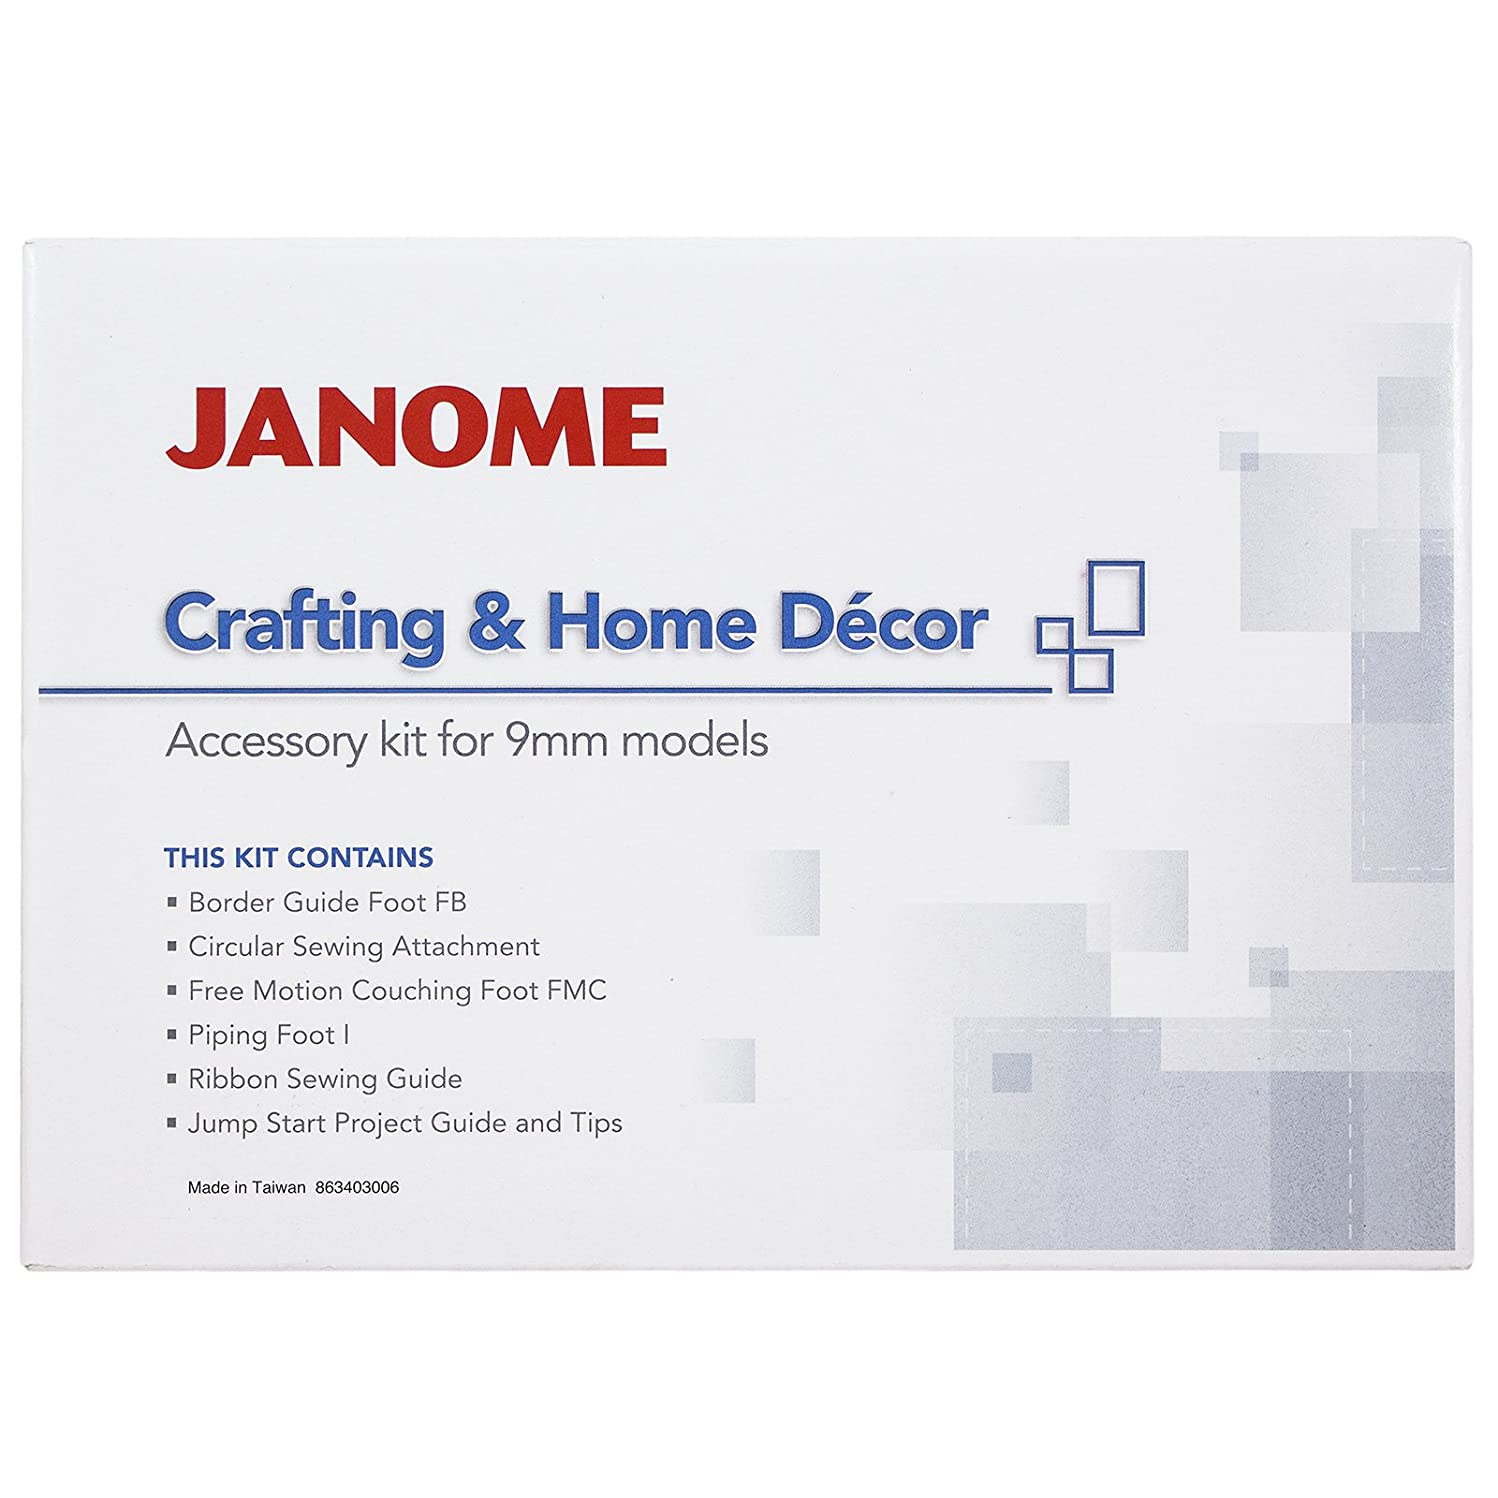 Janome Crafting & Decor Accessory Kit for 9mm machines